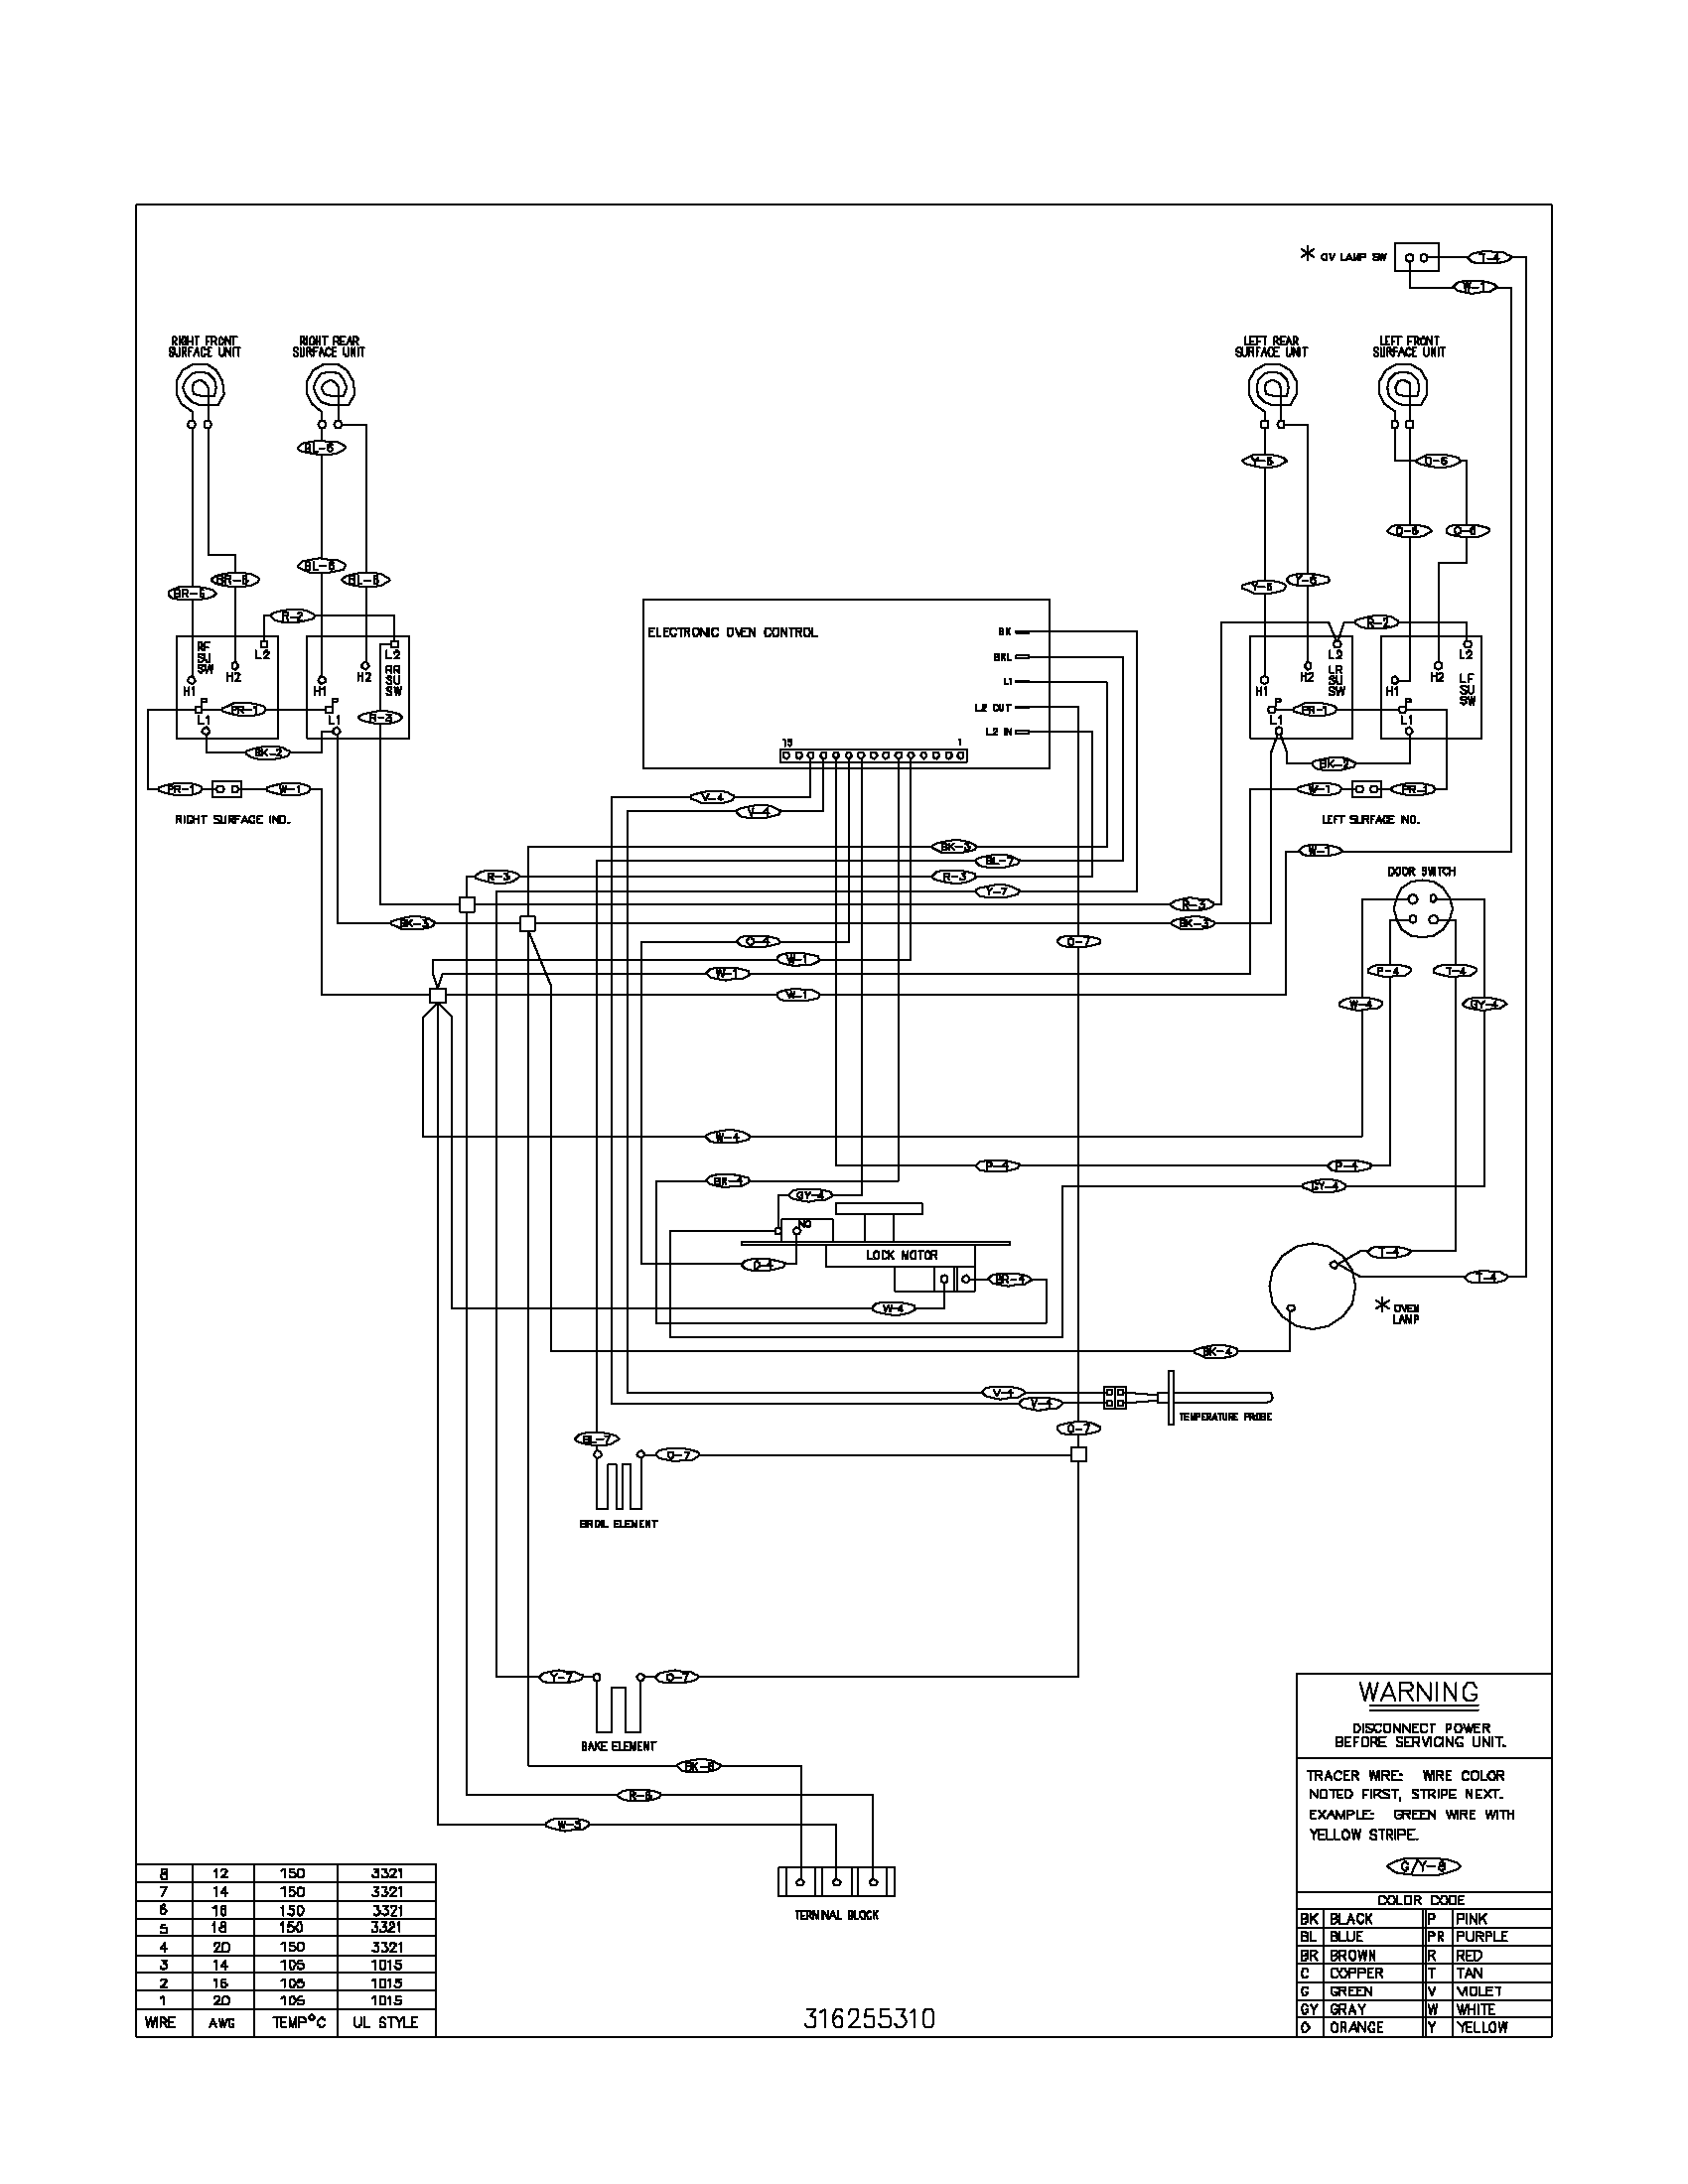 frigidaire fef352asf electric range timer stove clocks and Electric Light Switch fef352asf electric range wiring diagram parts diagram